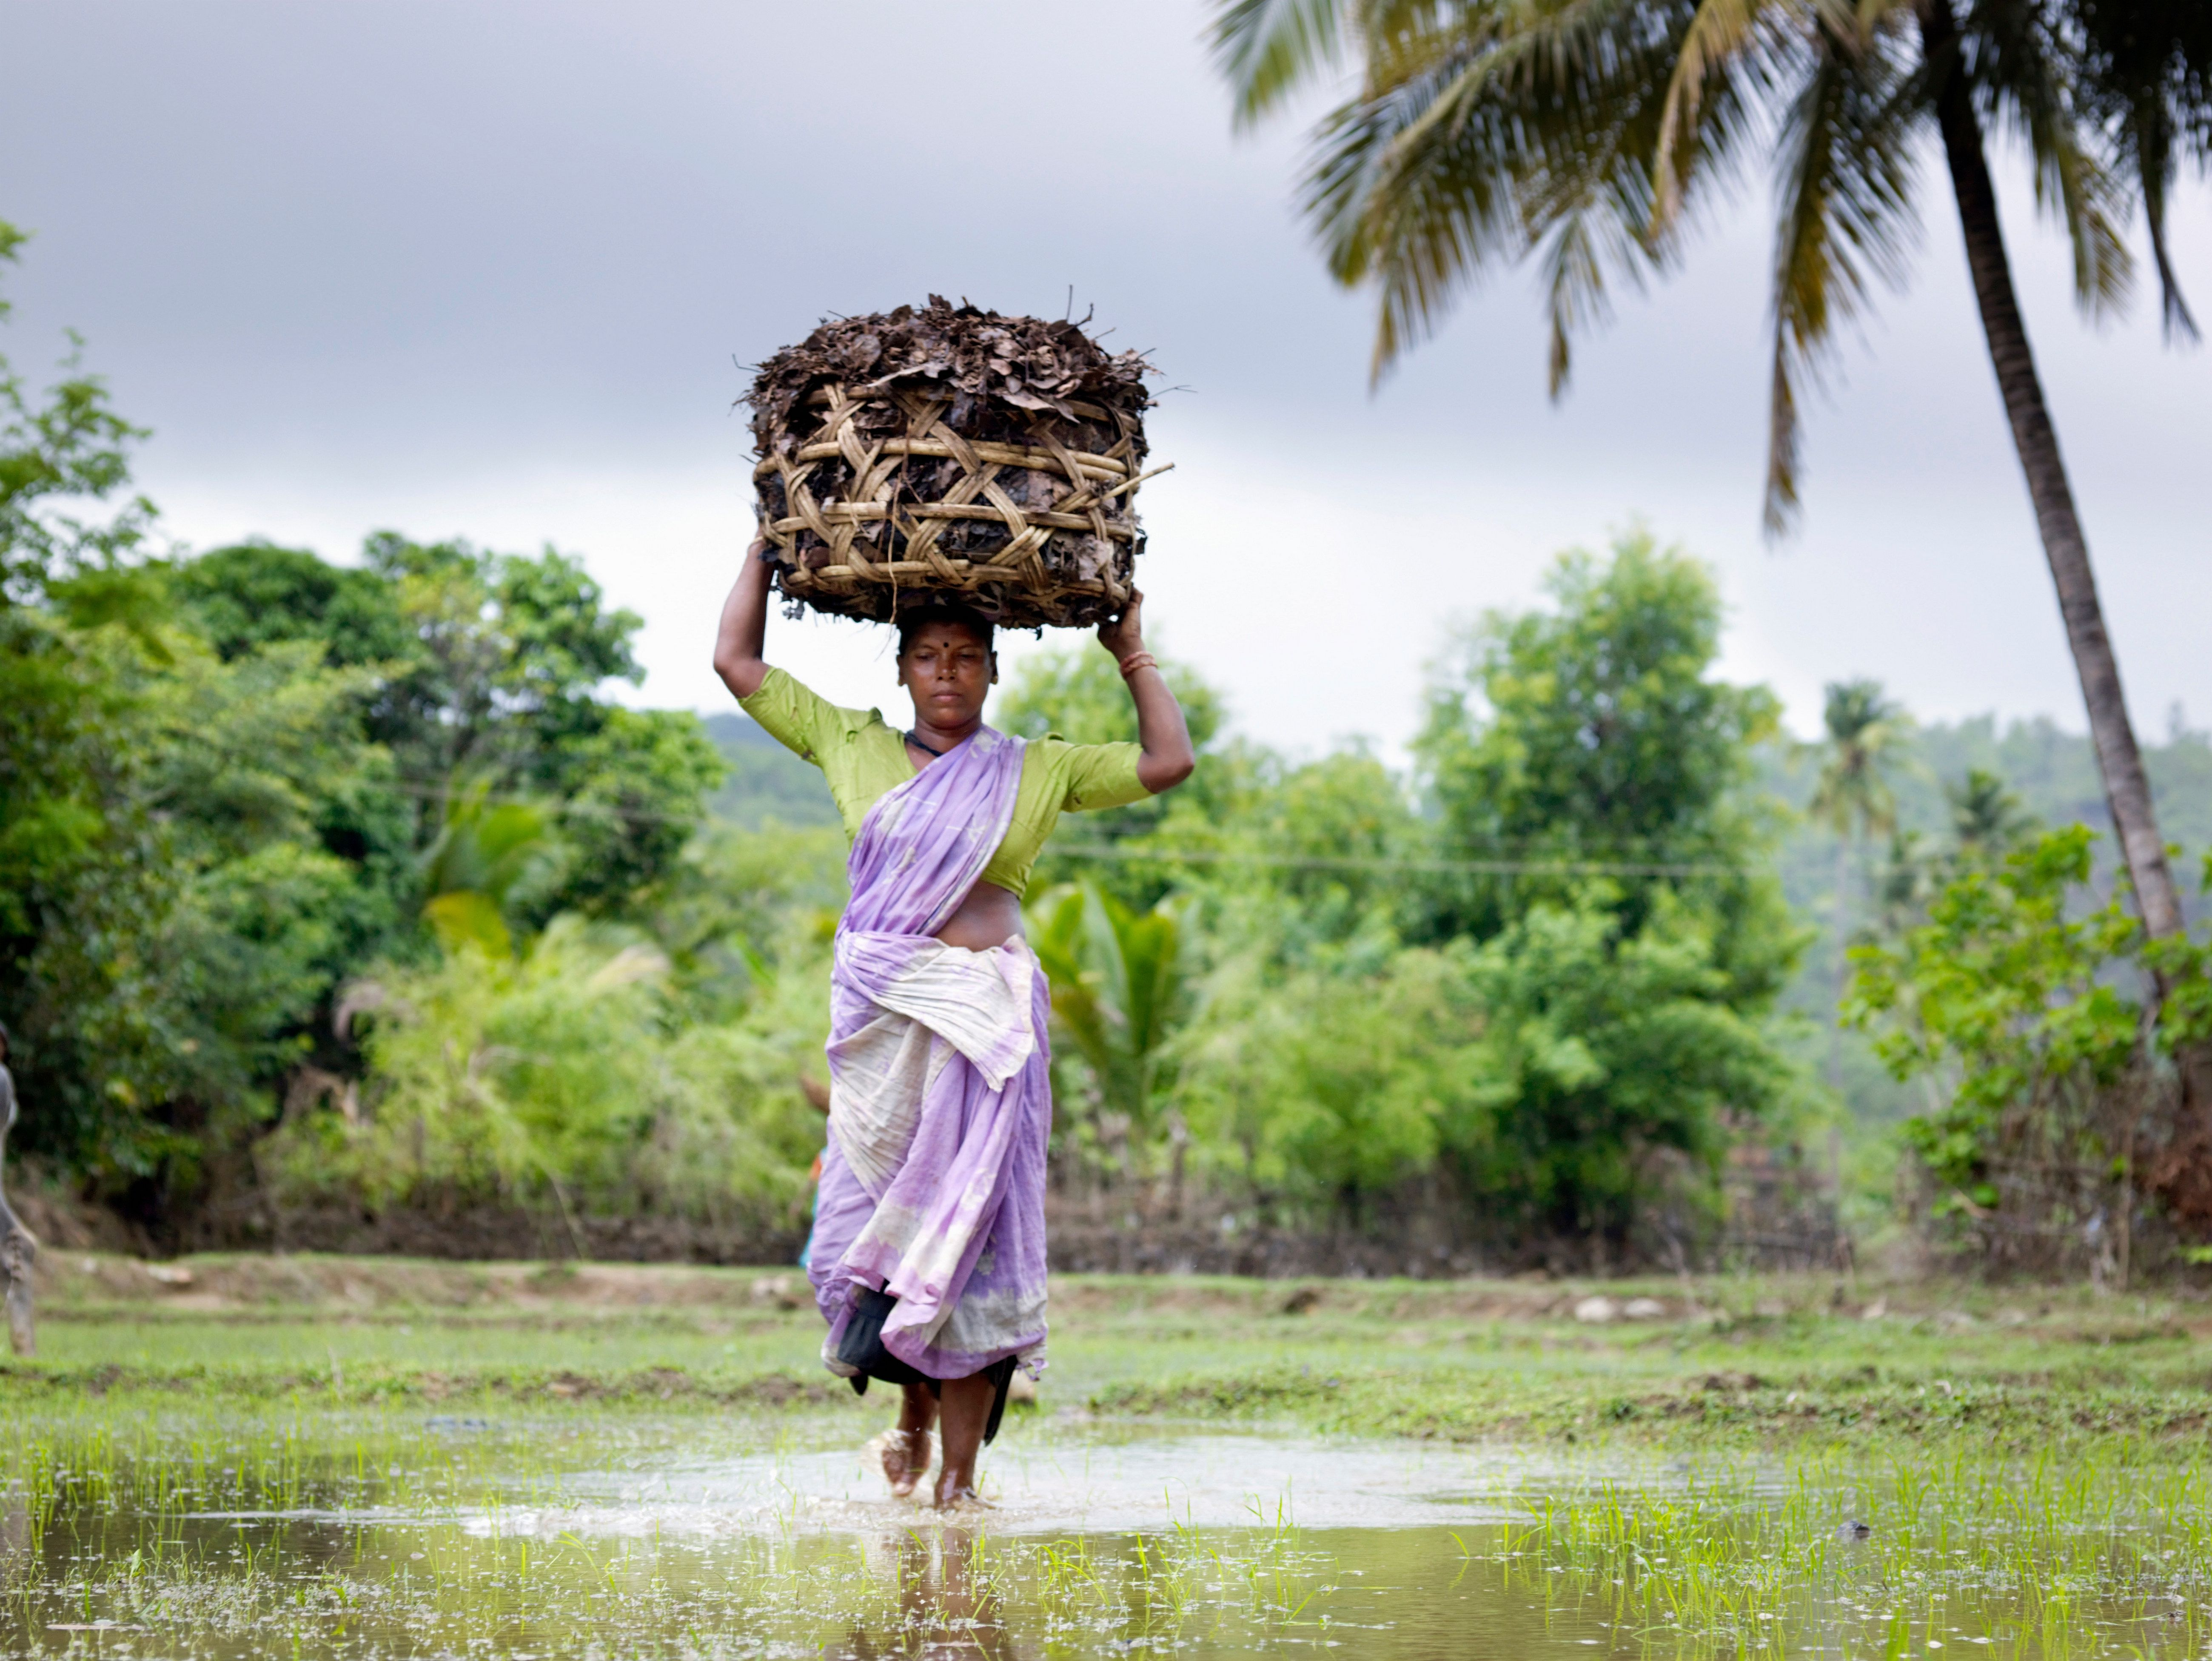 monsoon in india At least 324 people have been killed in flooding in the southern indian state of kerala in what local officials say is the worst flooding in 100 years india's monsoon season started in june, but.